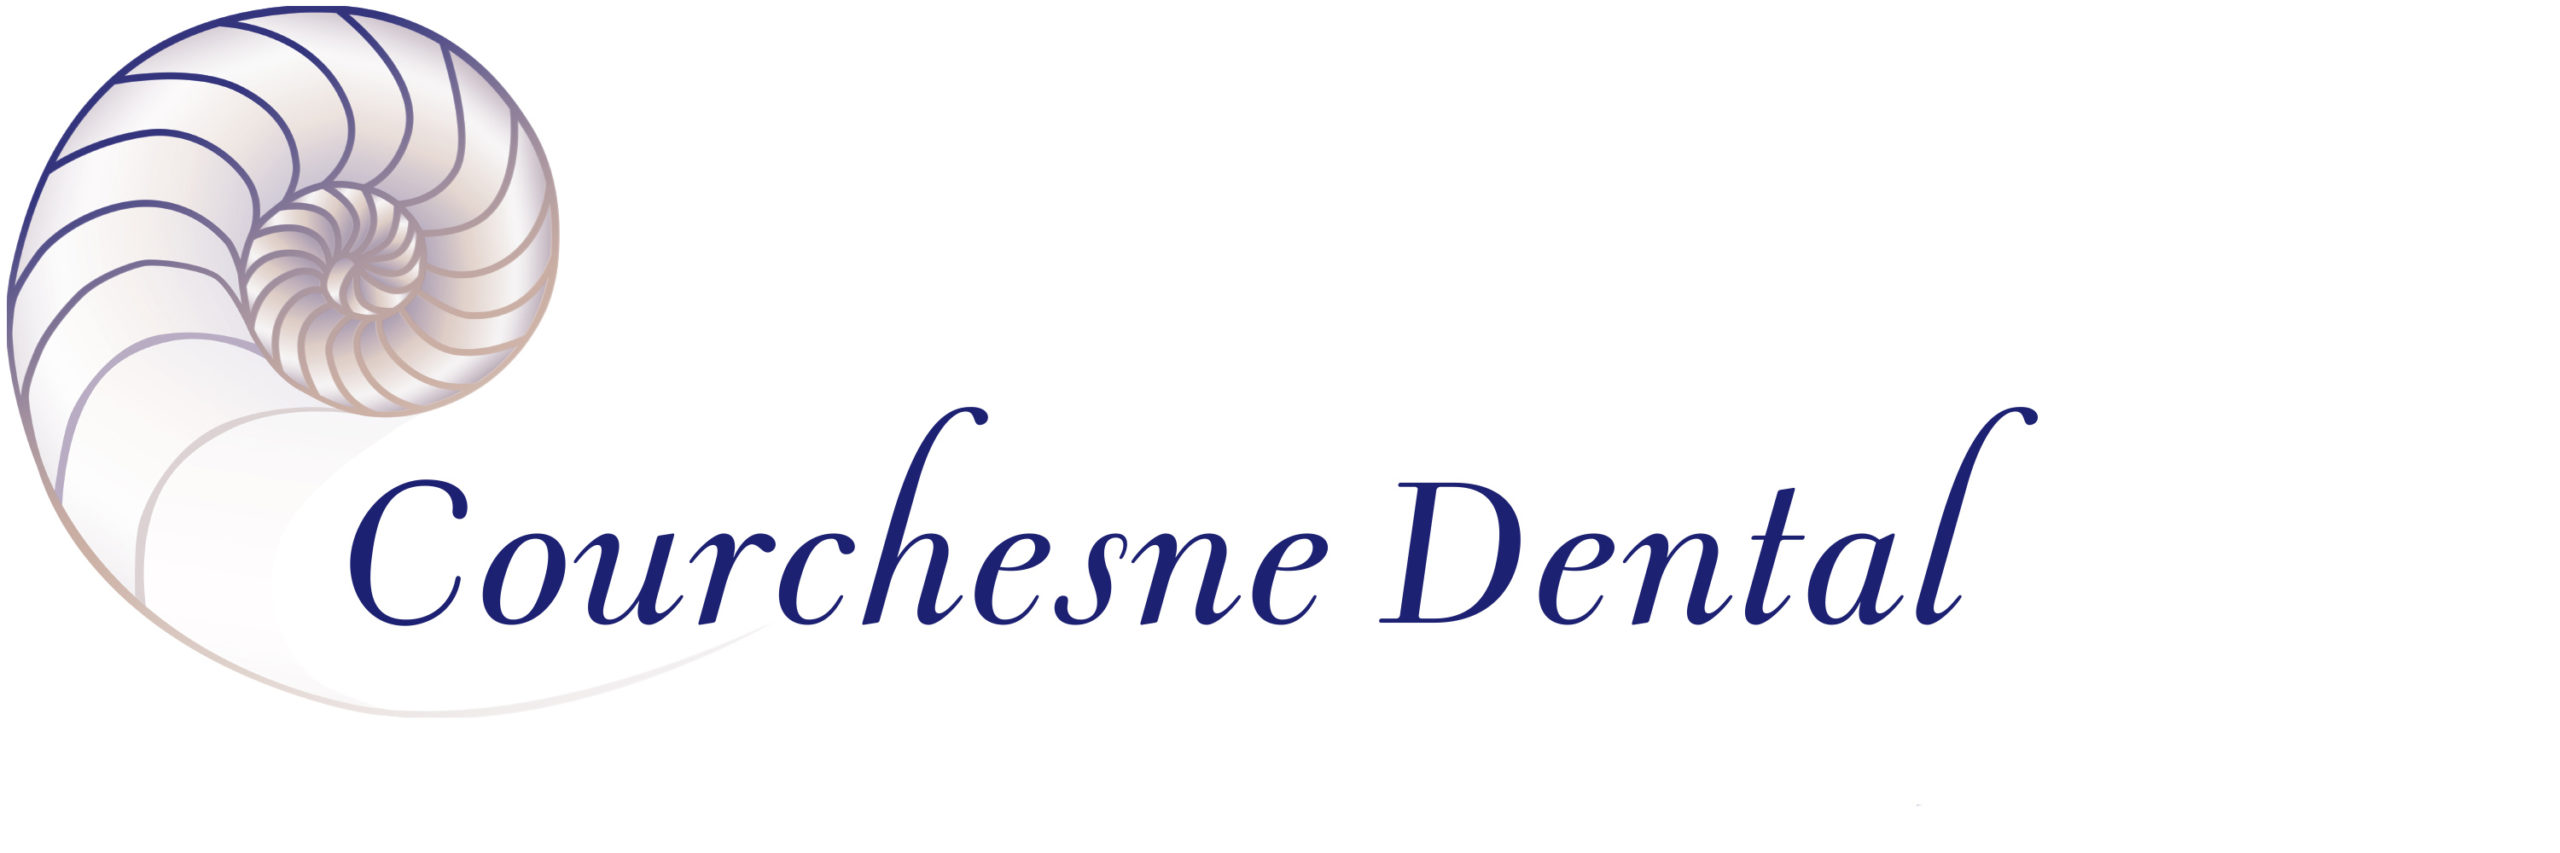 Courchesne Dental